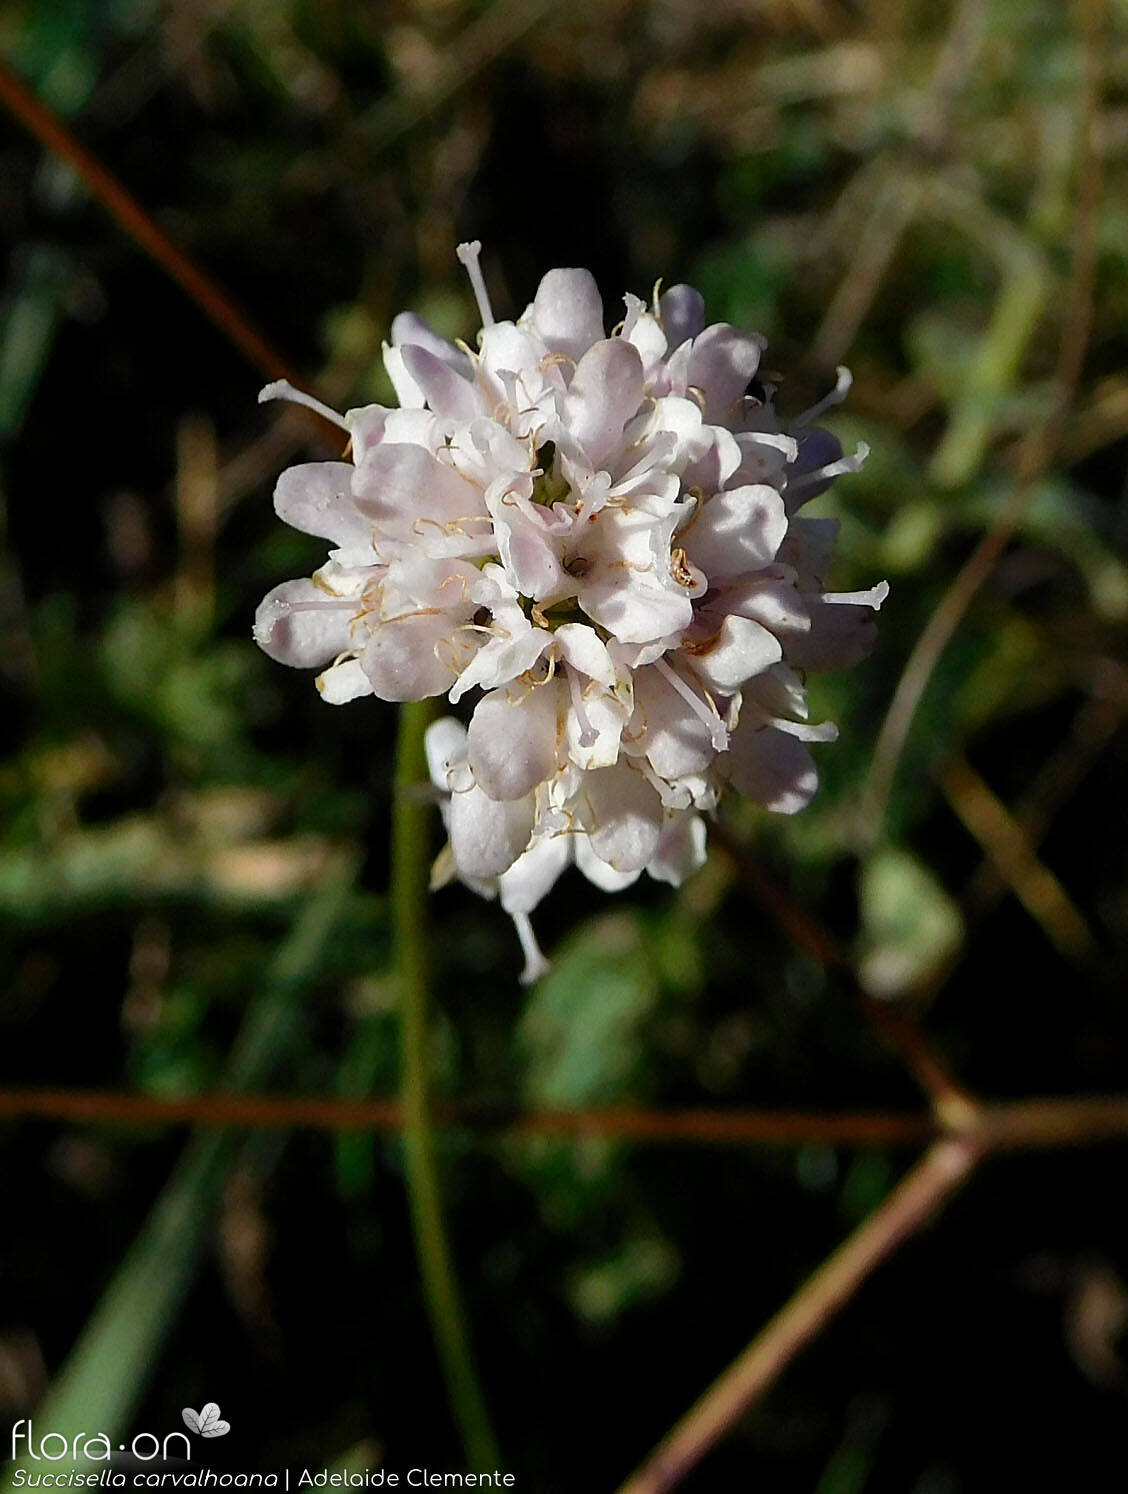 Succisella carvalhoana - Flor (close-up) | Adelaide Clemente; CC BY-NC 4.0